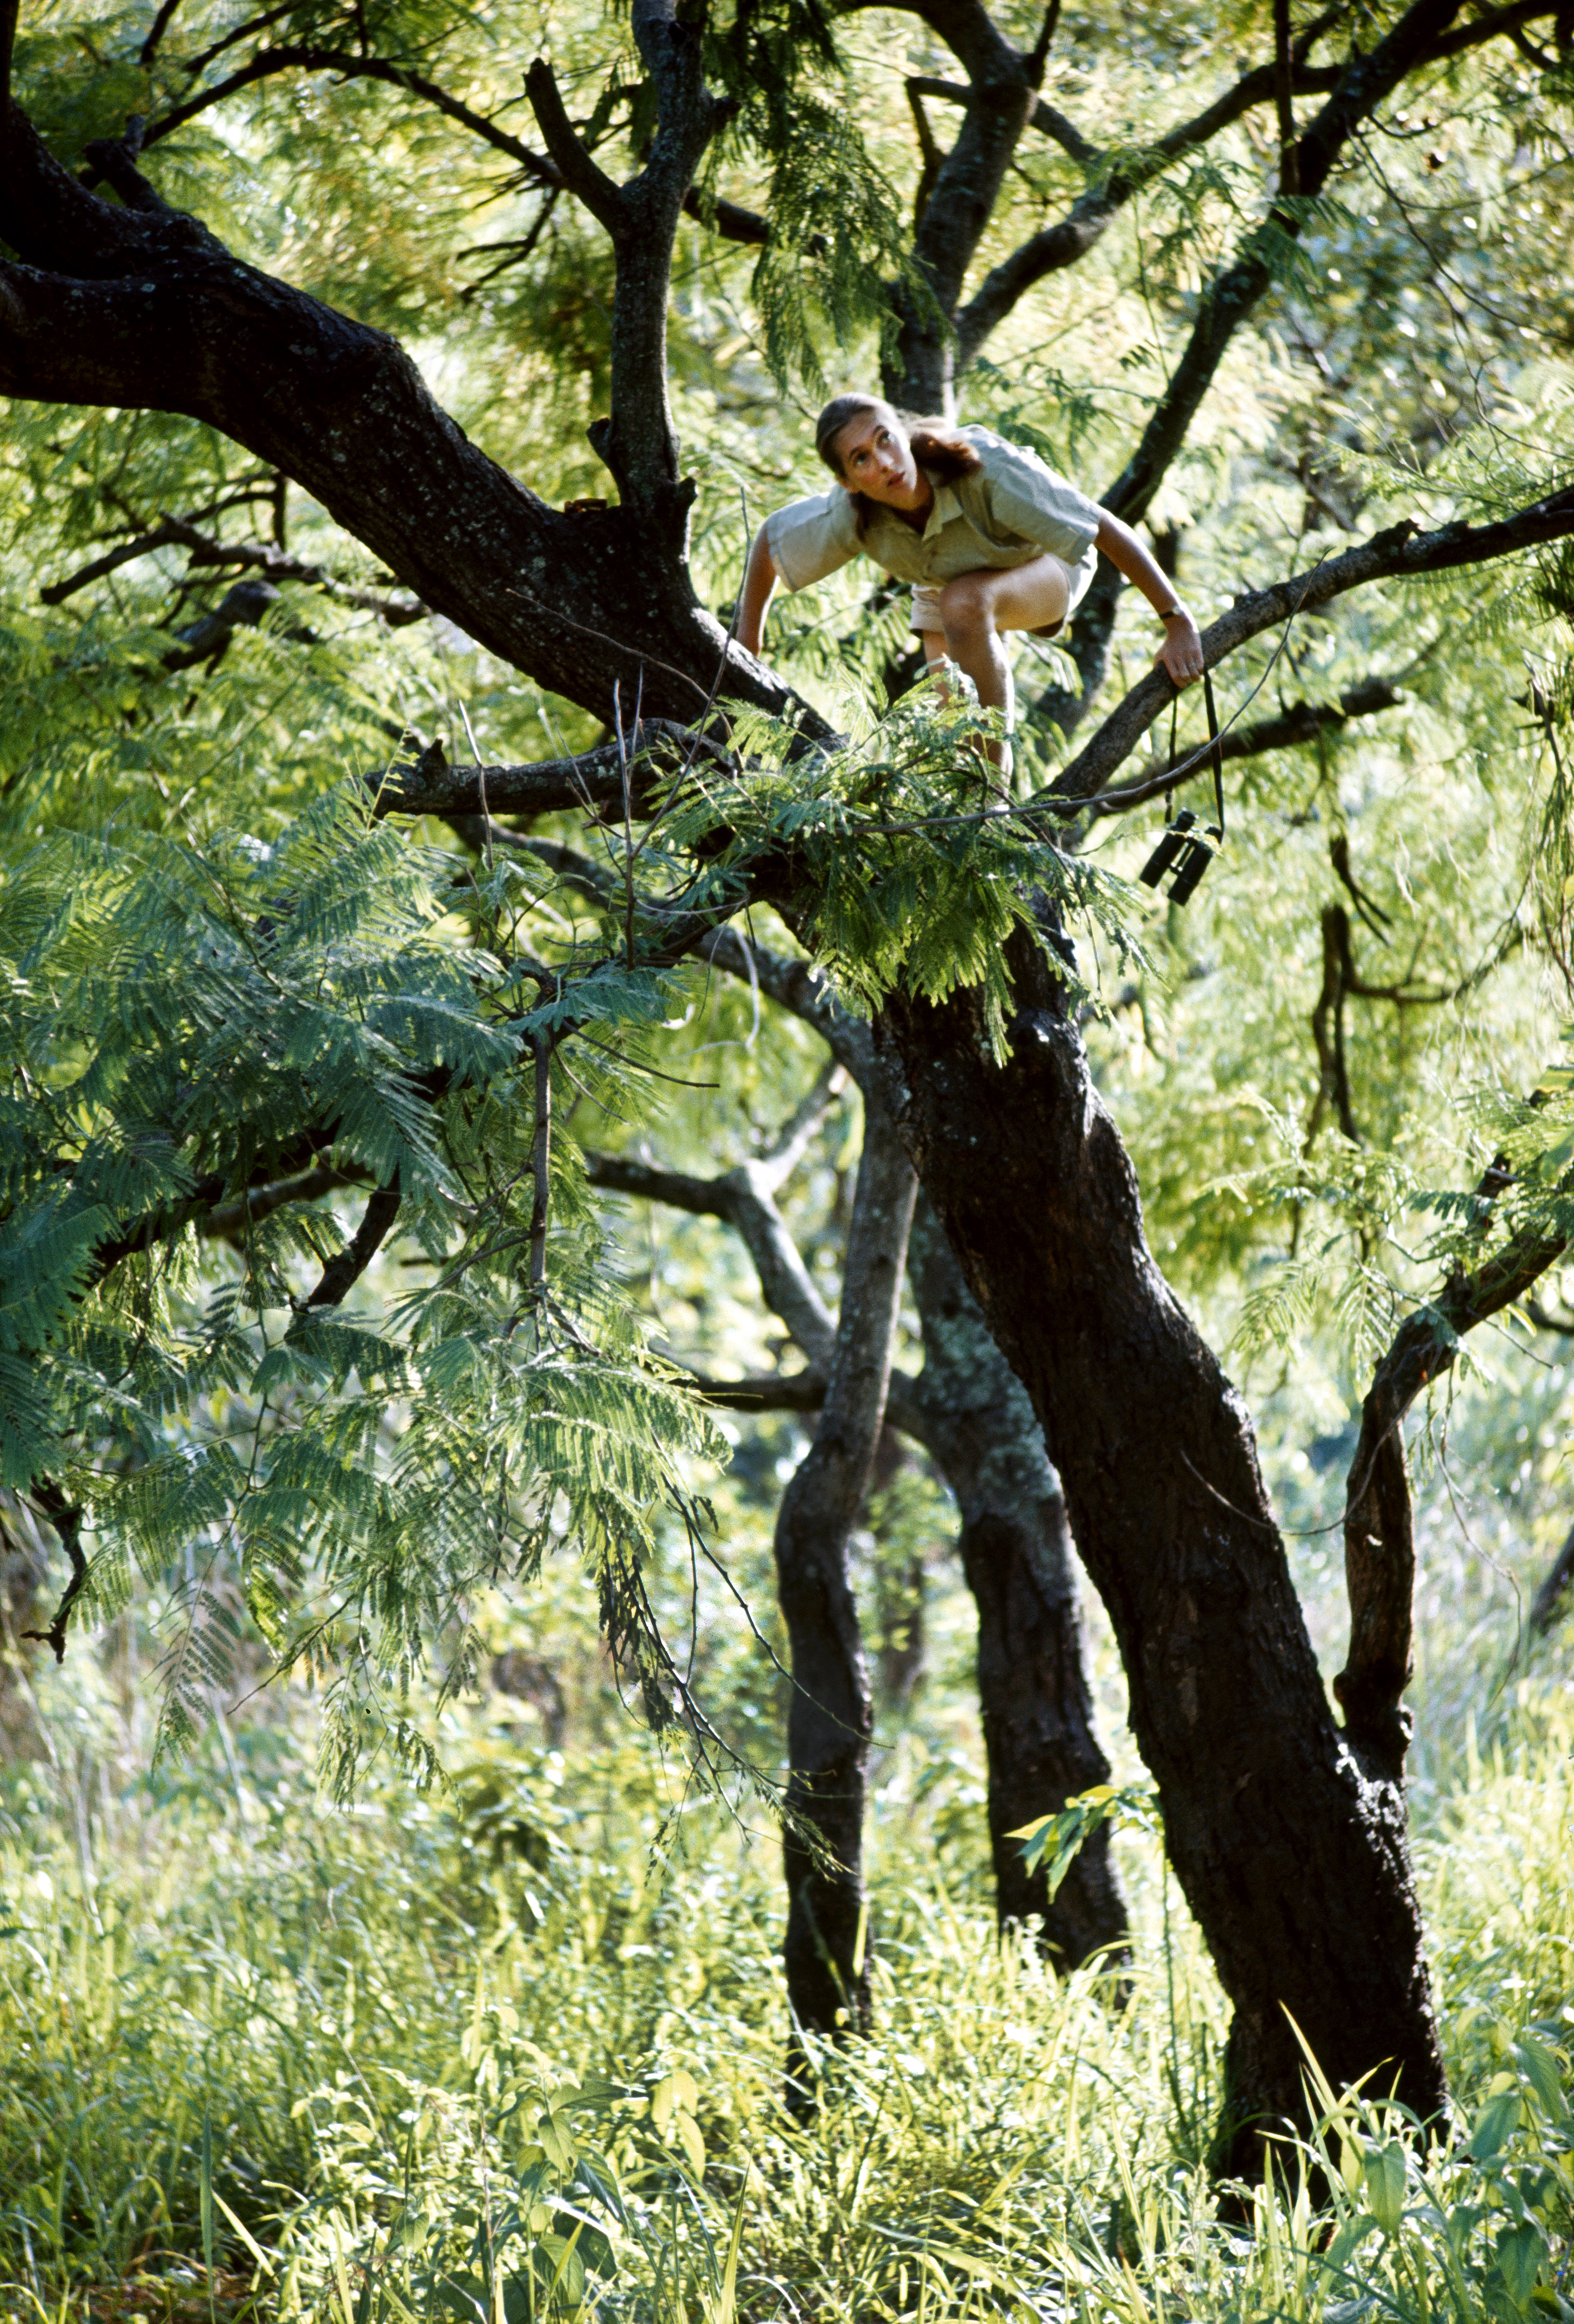 Zoologist with binoculars climbs a tree to better view chimpanzees.